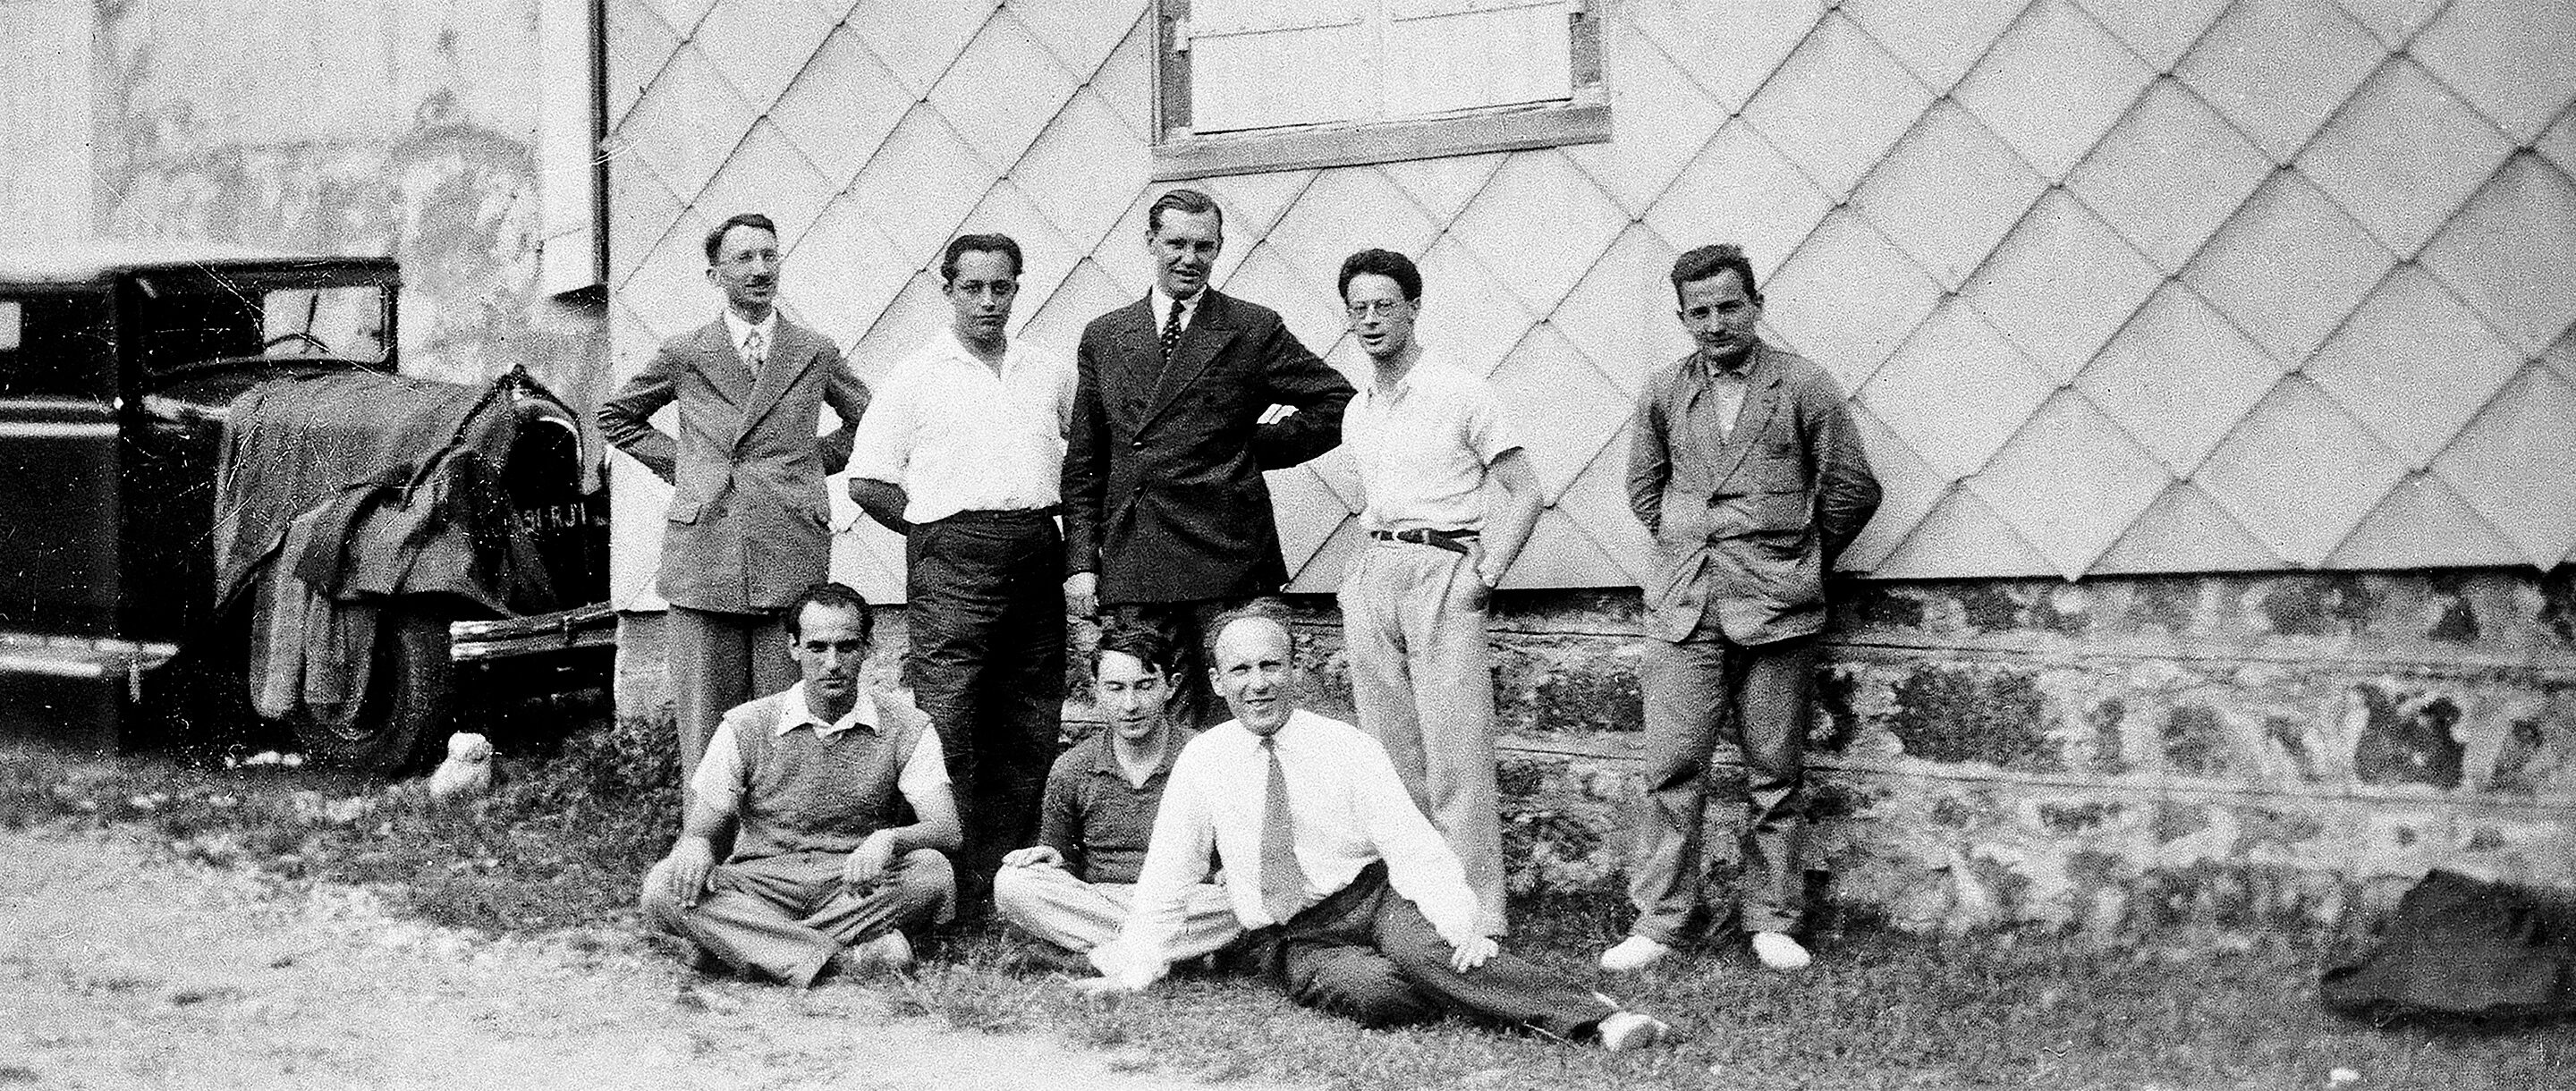 Black and white historical photo of eight men in front of a building, including Henri Cartan, André Weil and Szolem Mandelbrojt.